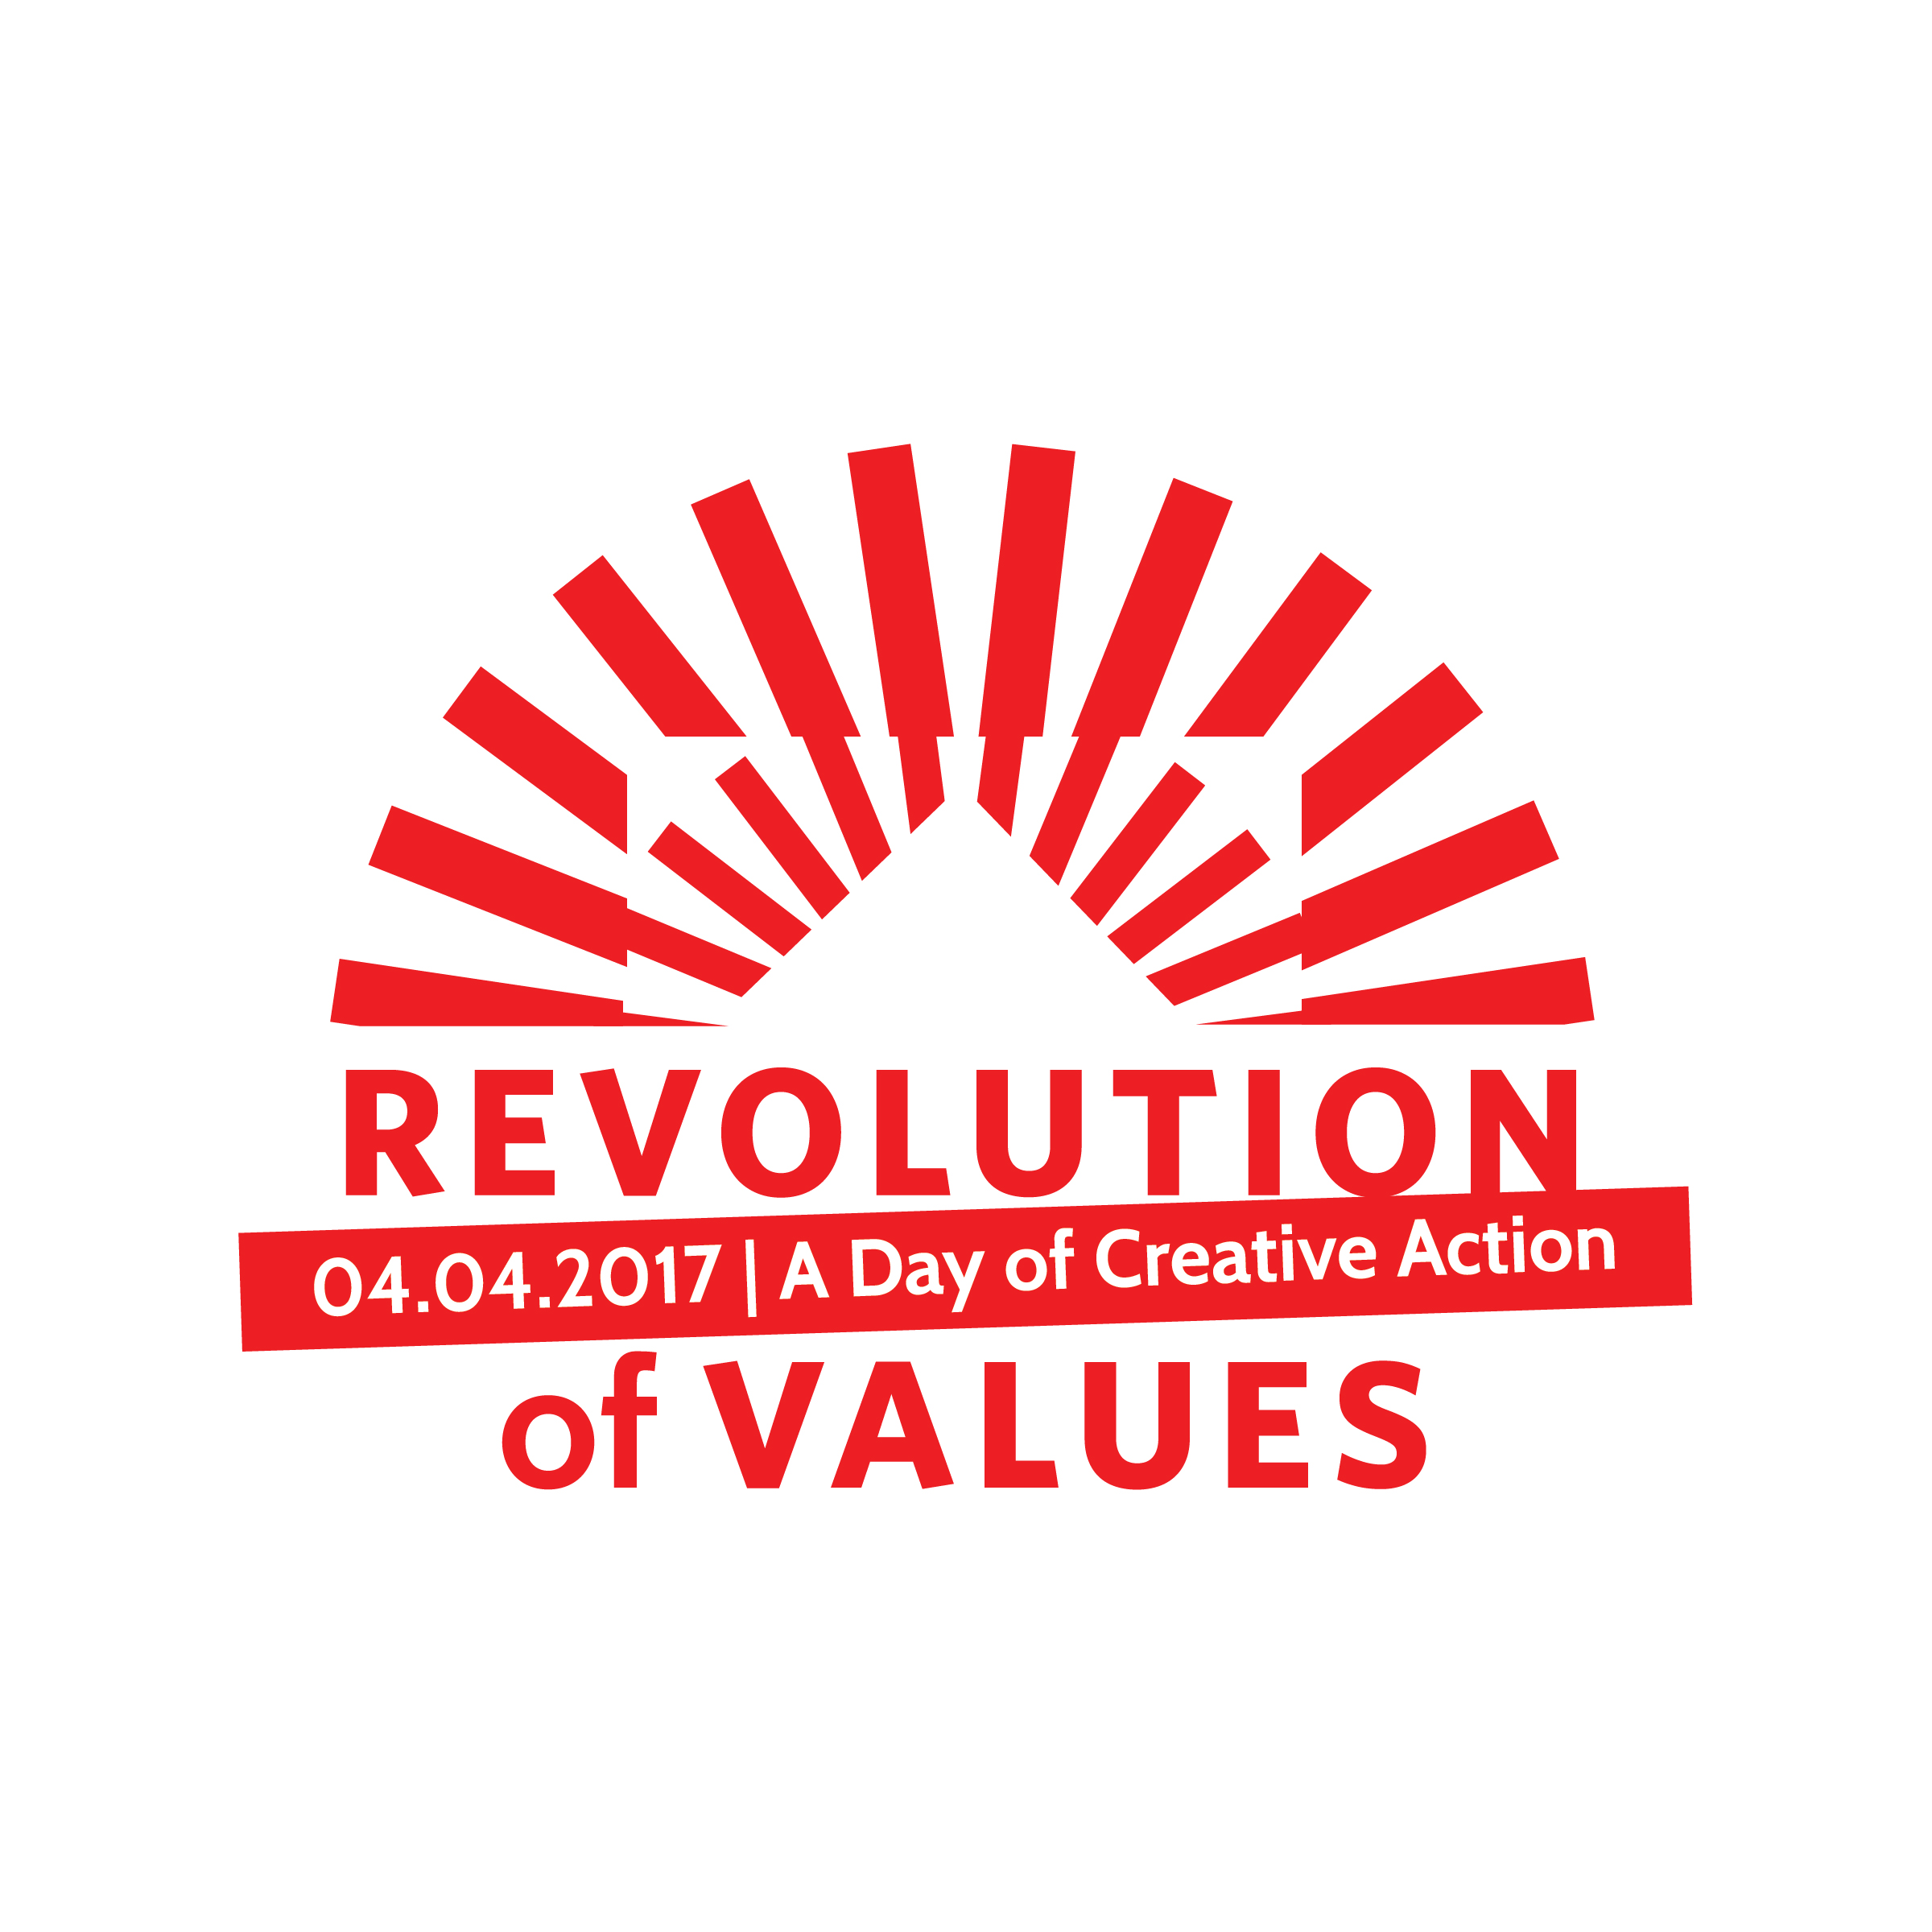 Revolutionofvalues-01-01